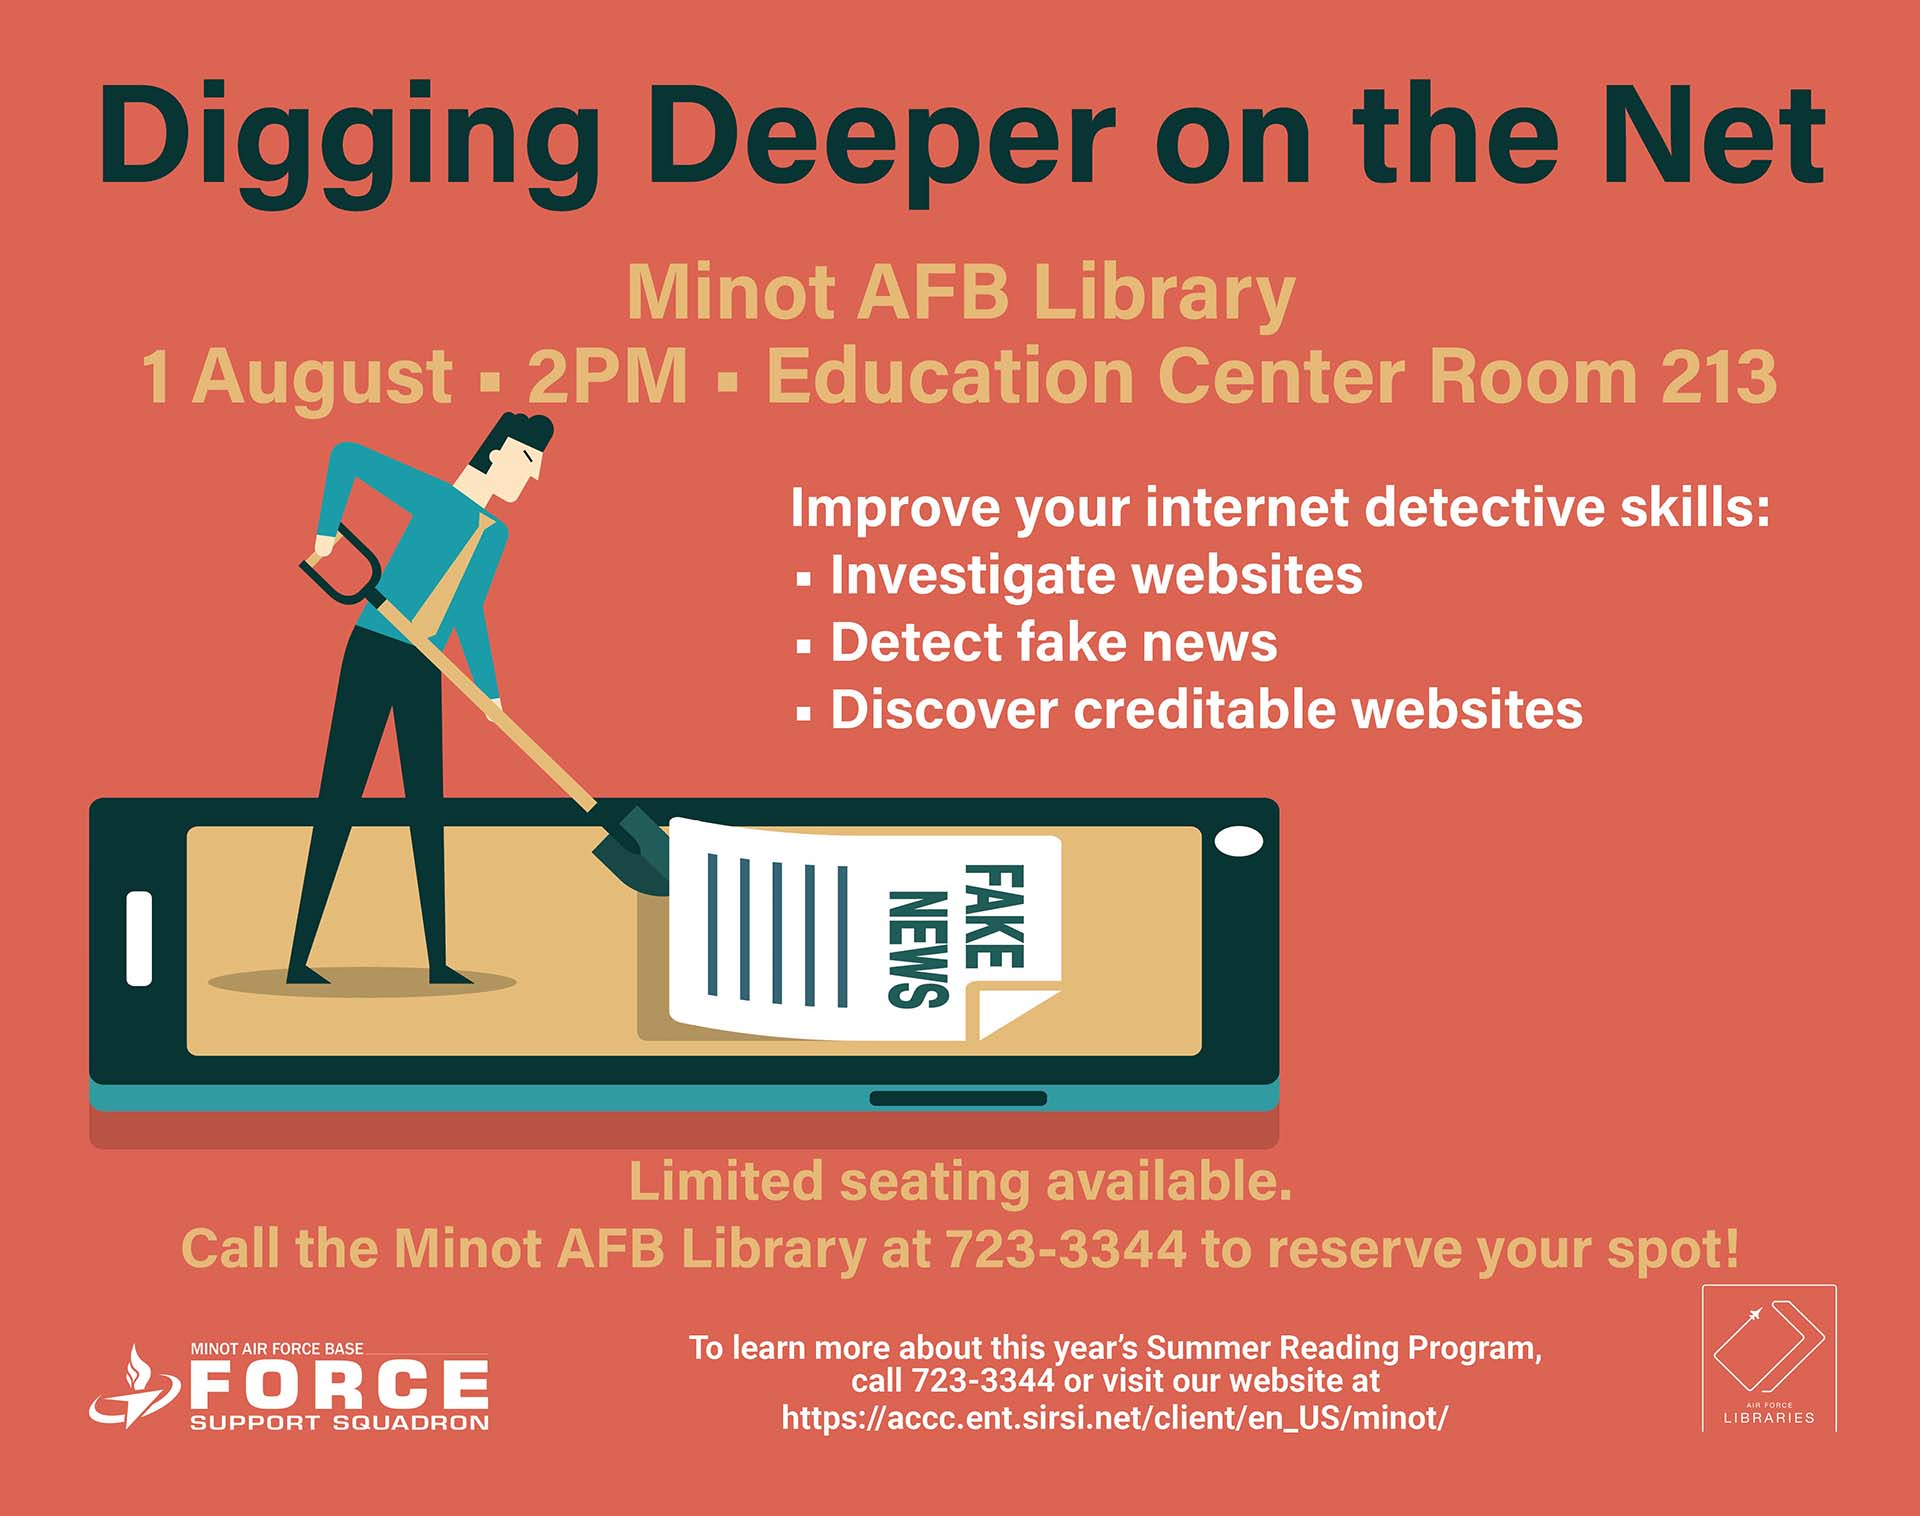 Digging Deeper on the Net